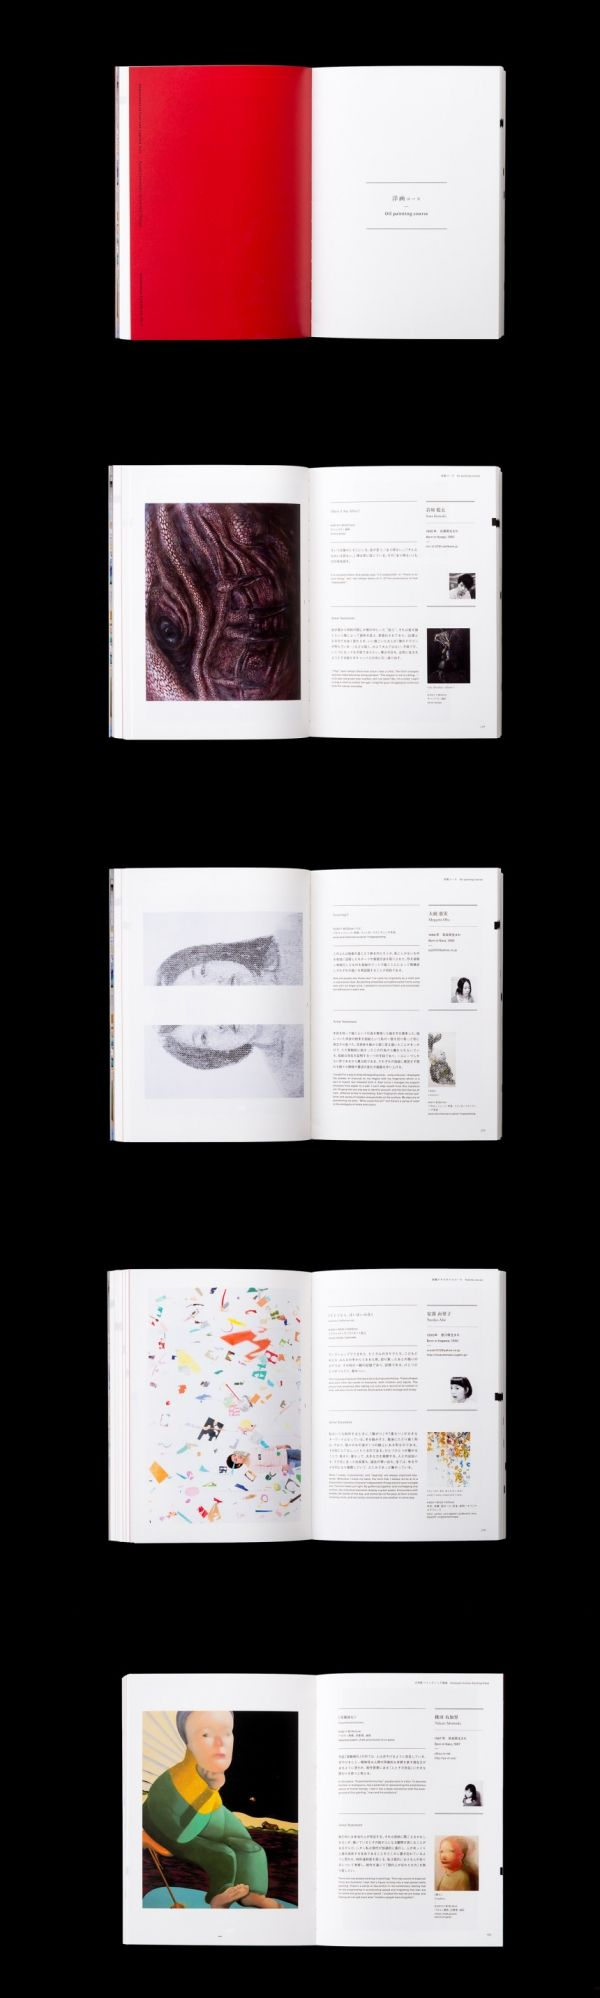 http://umamu.jp/ | Department of Fine and Applied Arts, KUAD/Graduation Exhibition Catalogue 2012